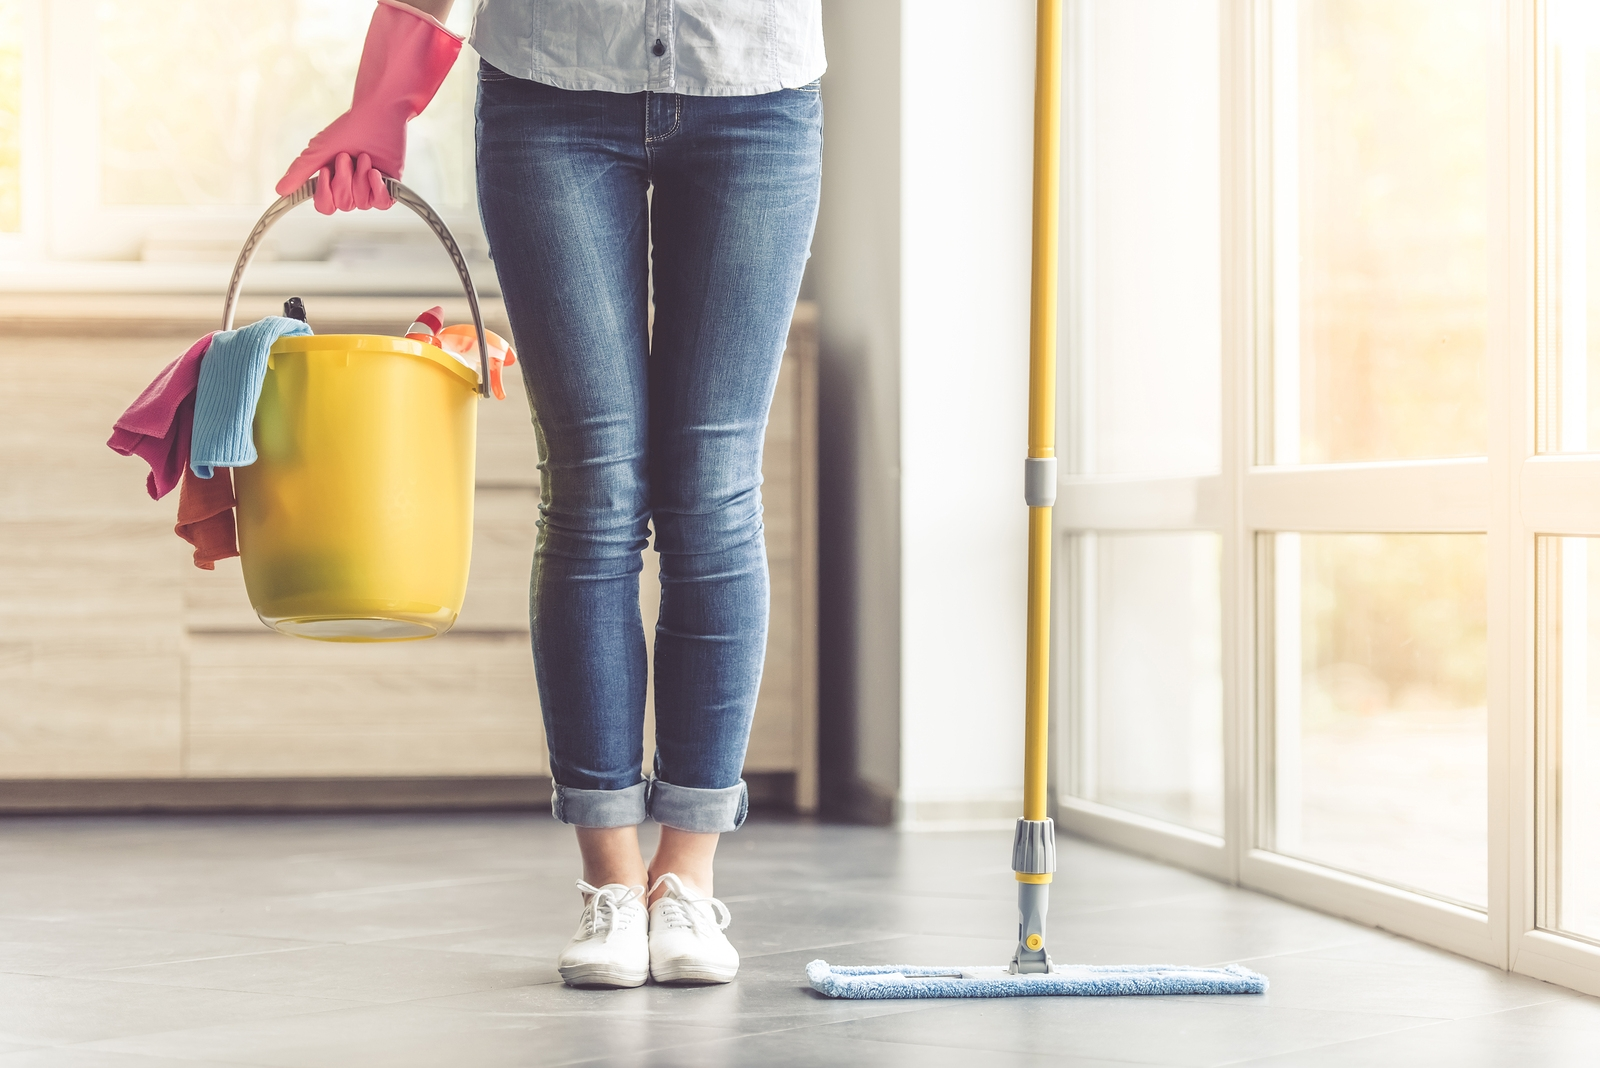 Residential House Cleaning: Tips for Transitioning to Winter